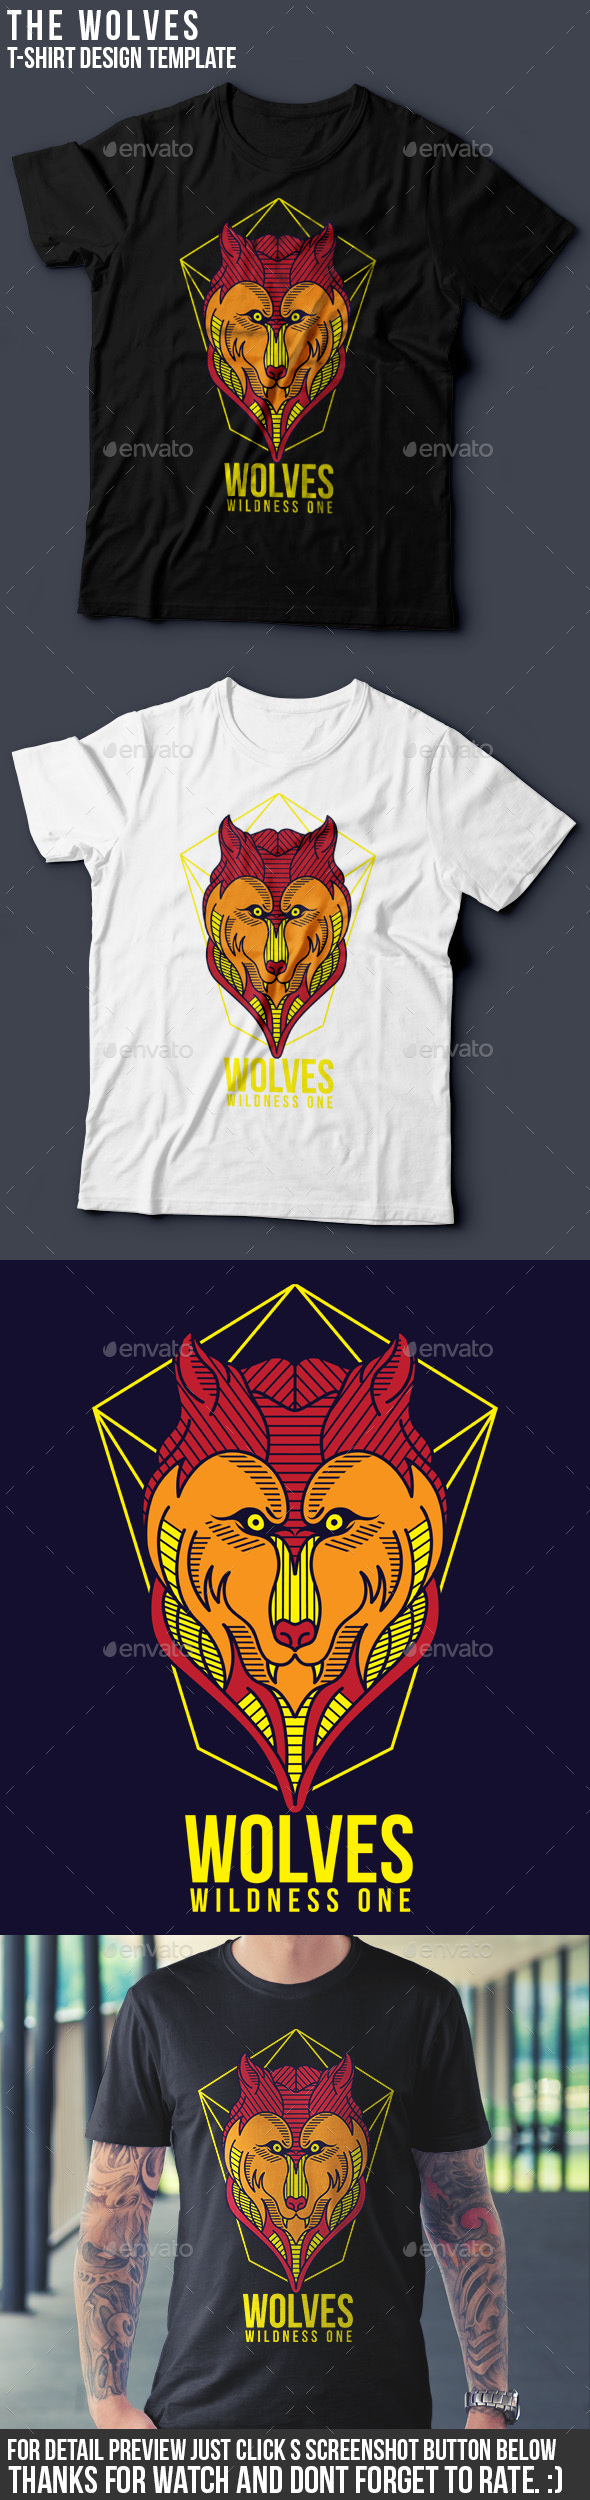 The Wolves Part I T-Shirt Template - Grunge Designs